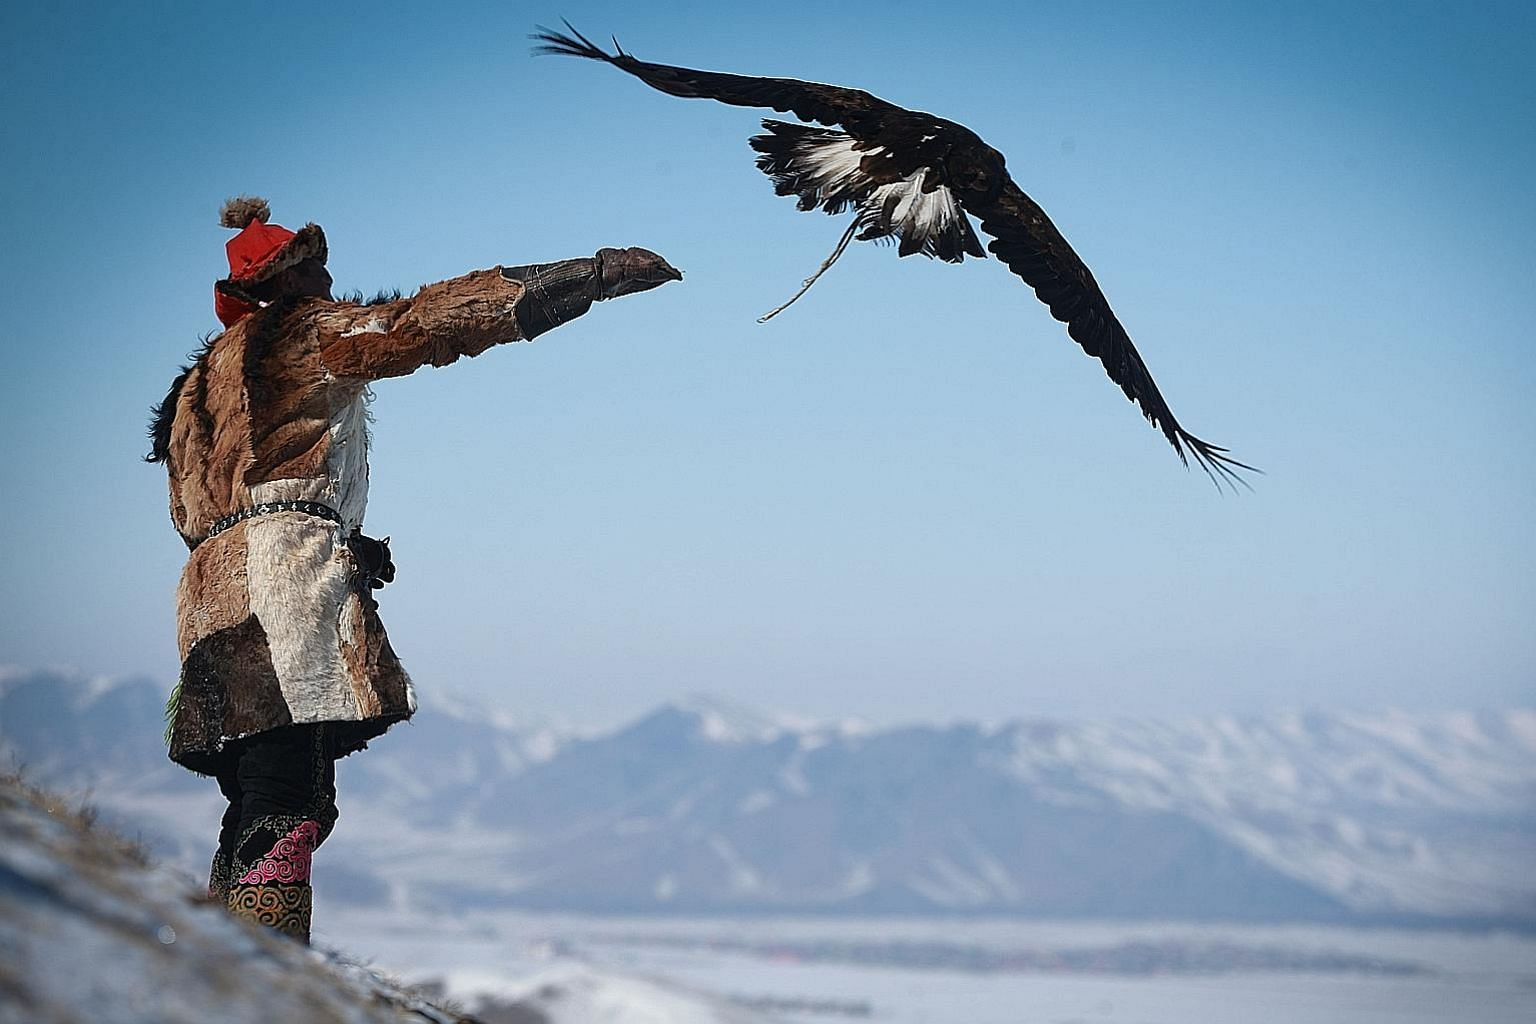 A man releasing an eagle during the Spring Eagle Festival in Ulaanbaatar, the capital of Mongolia. Members of Mongolia's Kazakh ethnic group celebrate their 6,000-year-old history of eagle-hunting with an annual festival which aims to draw tourists a